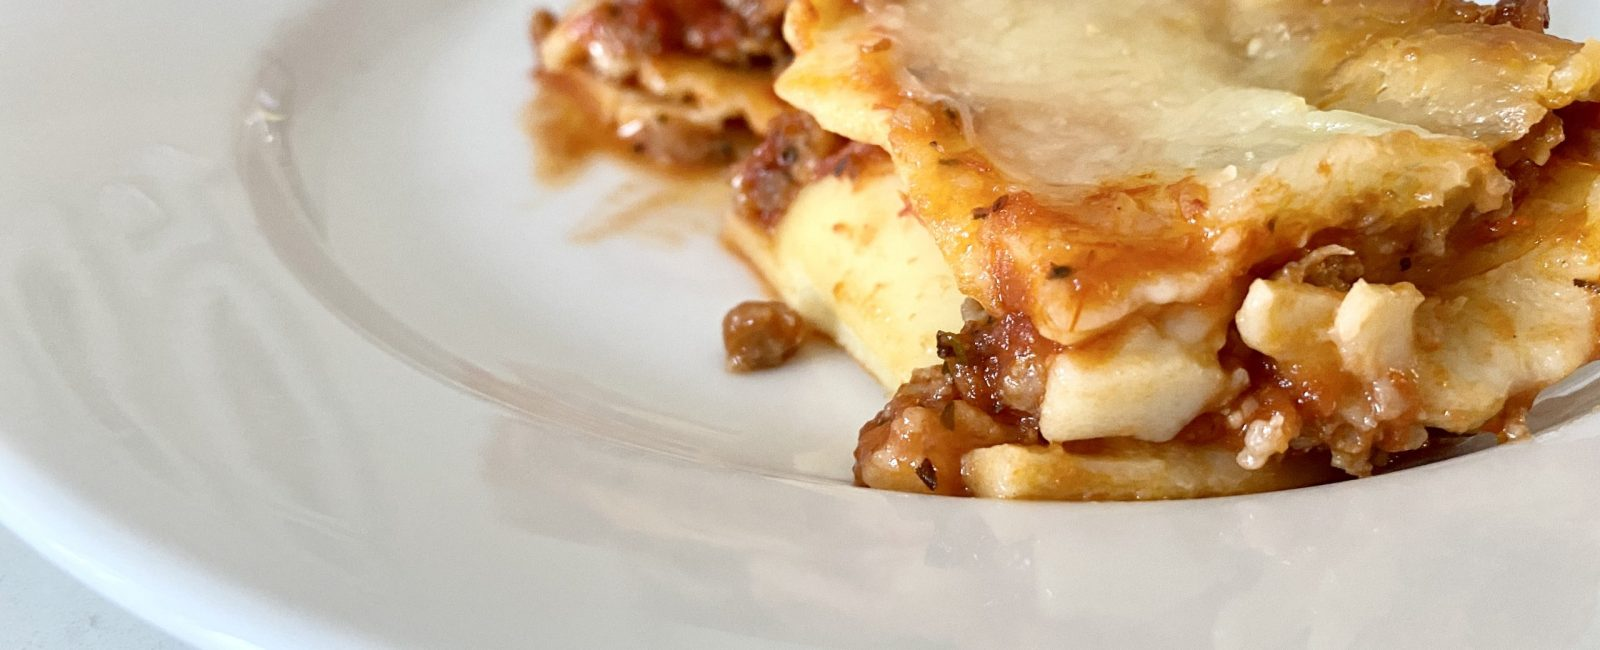 Easy 4-Ingredient Ravioli Lasagna Bake